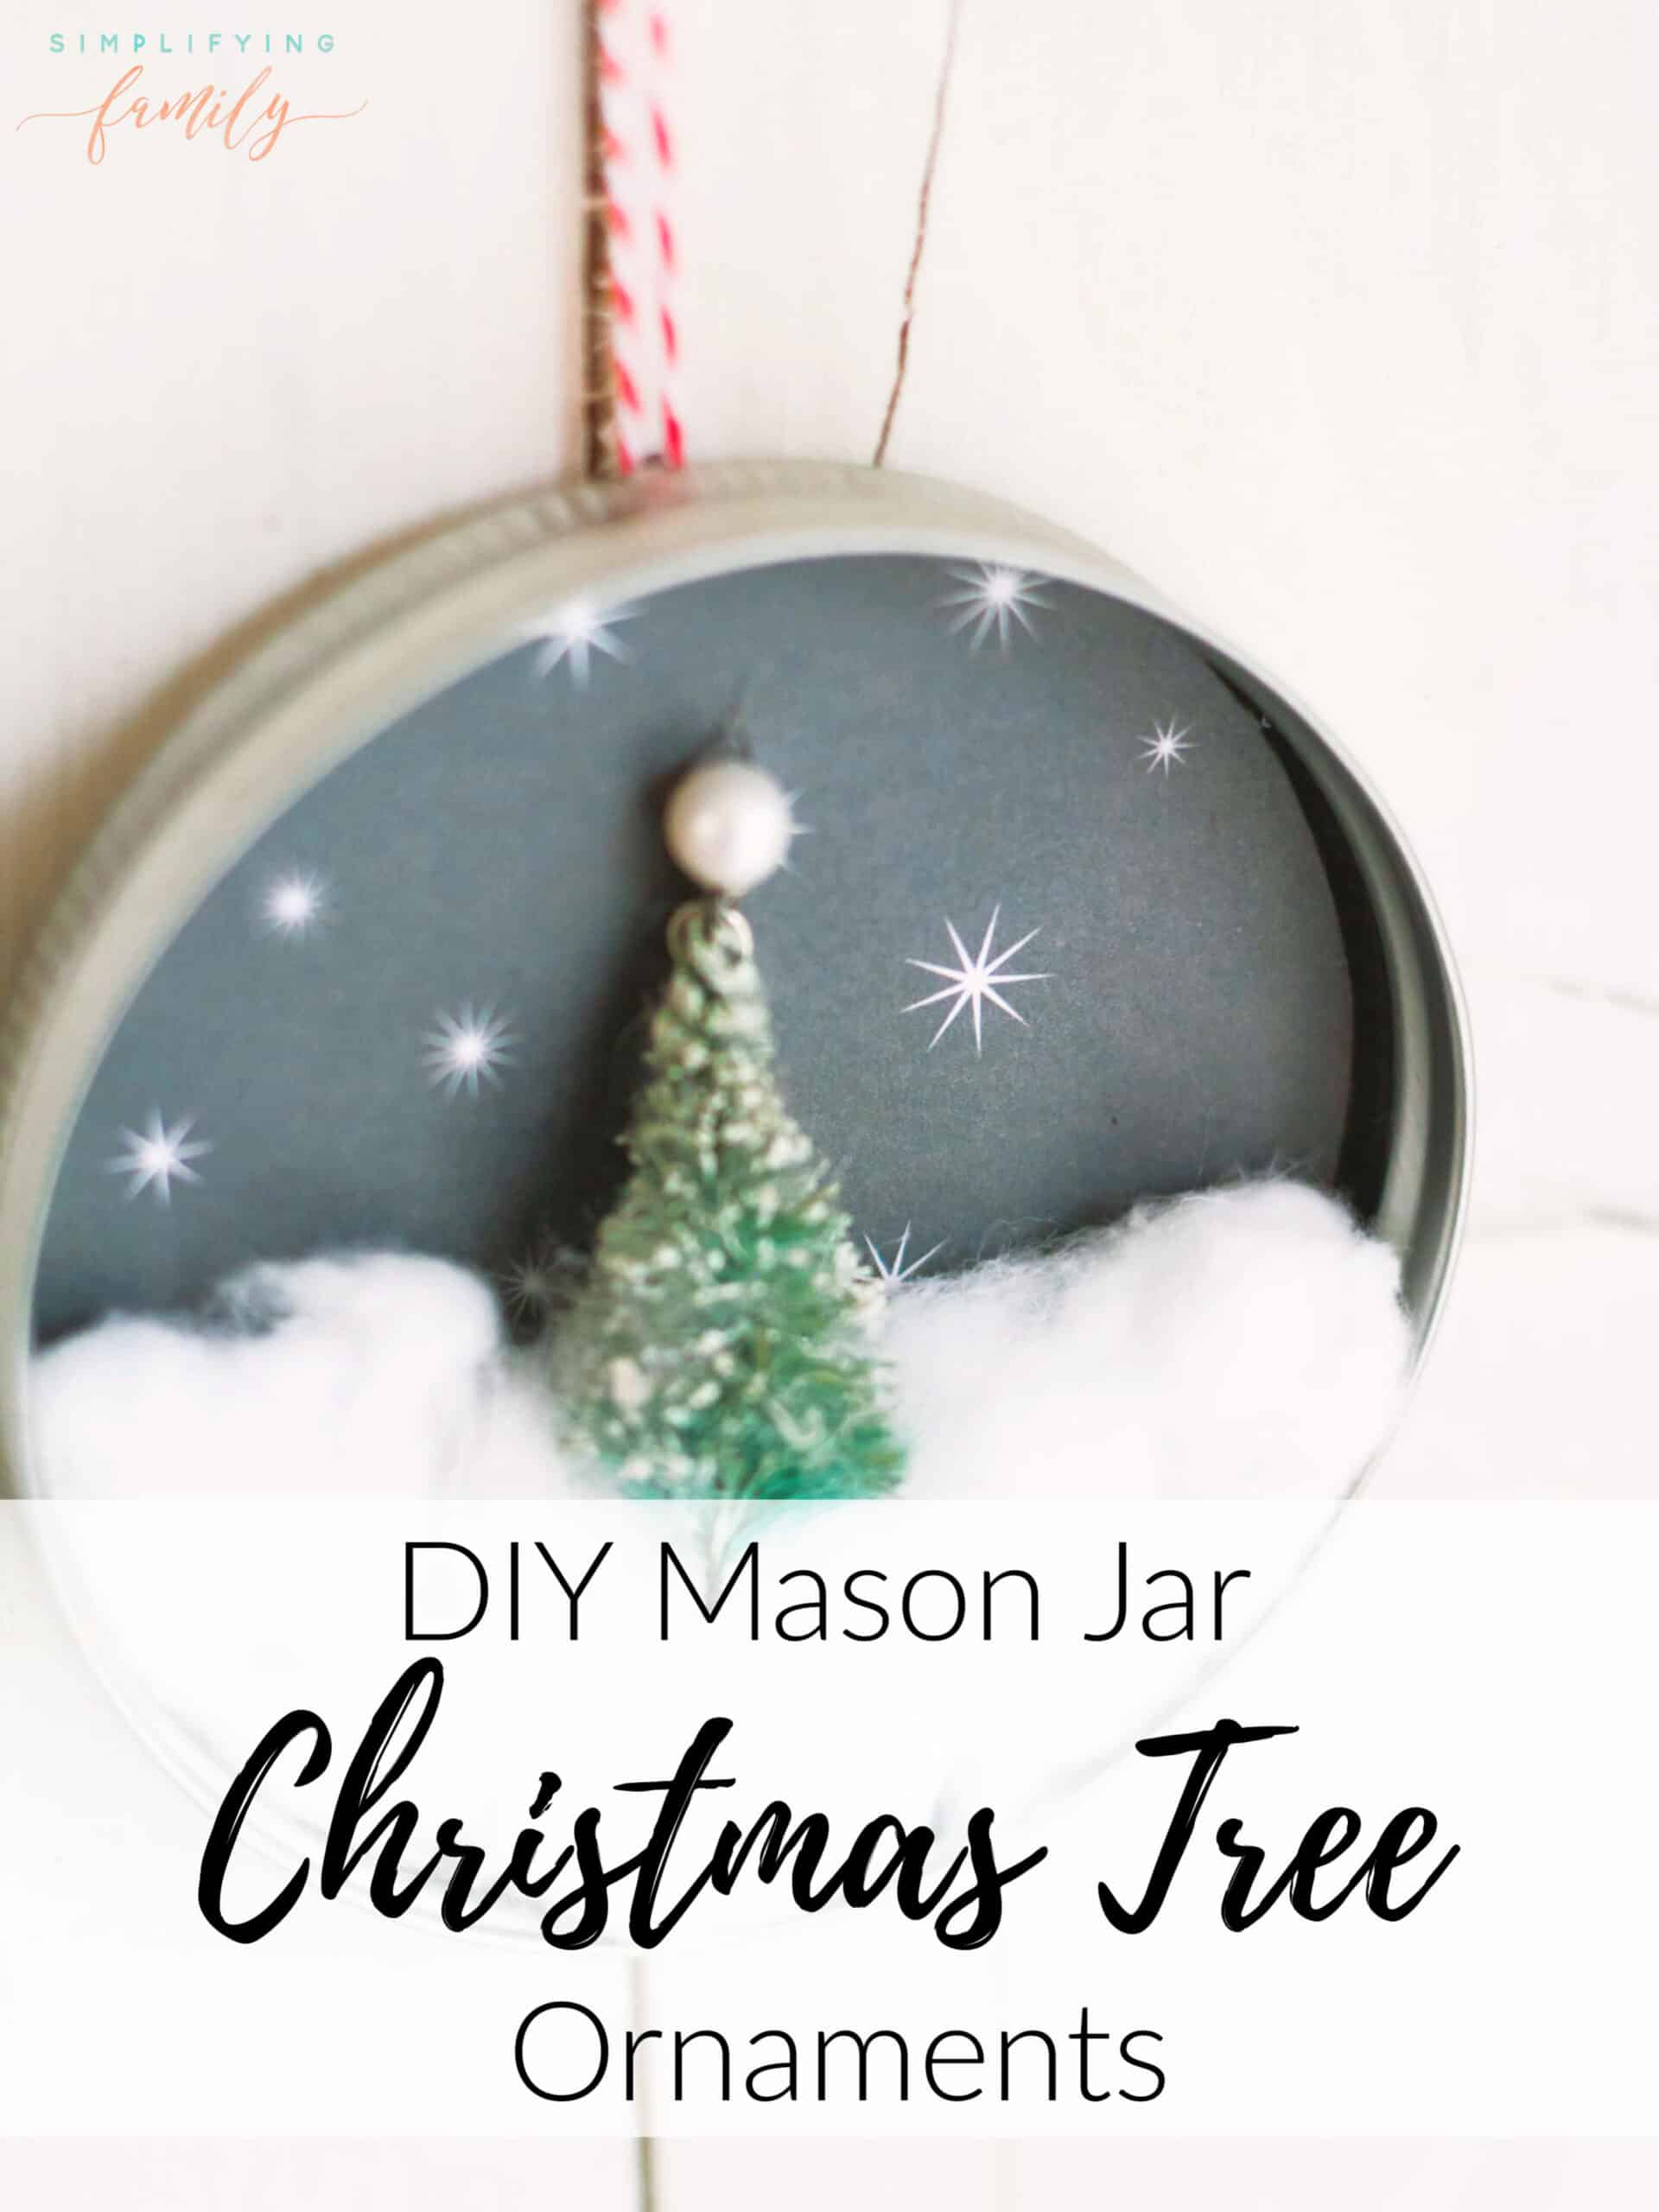 Whether you are looking for easy ornaments you can make with your children, sell at Christmas Markets, or make homemade gifts to friends and family, this Mason Jar Christmas tree ornament is perfect. #DIY #christmasornament #masonjarlid #jarlidornament #masonjarcrafts via @simplifyingfamily